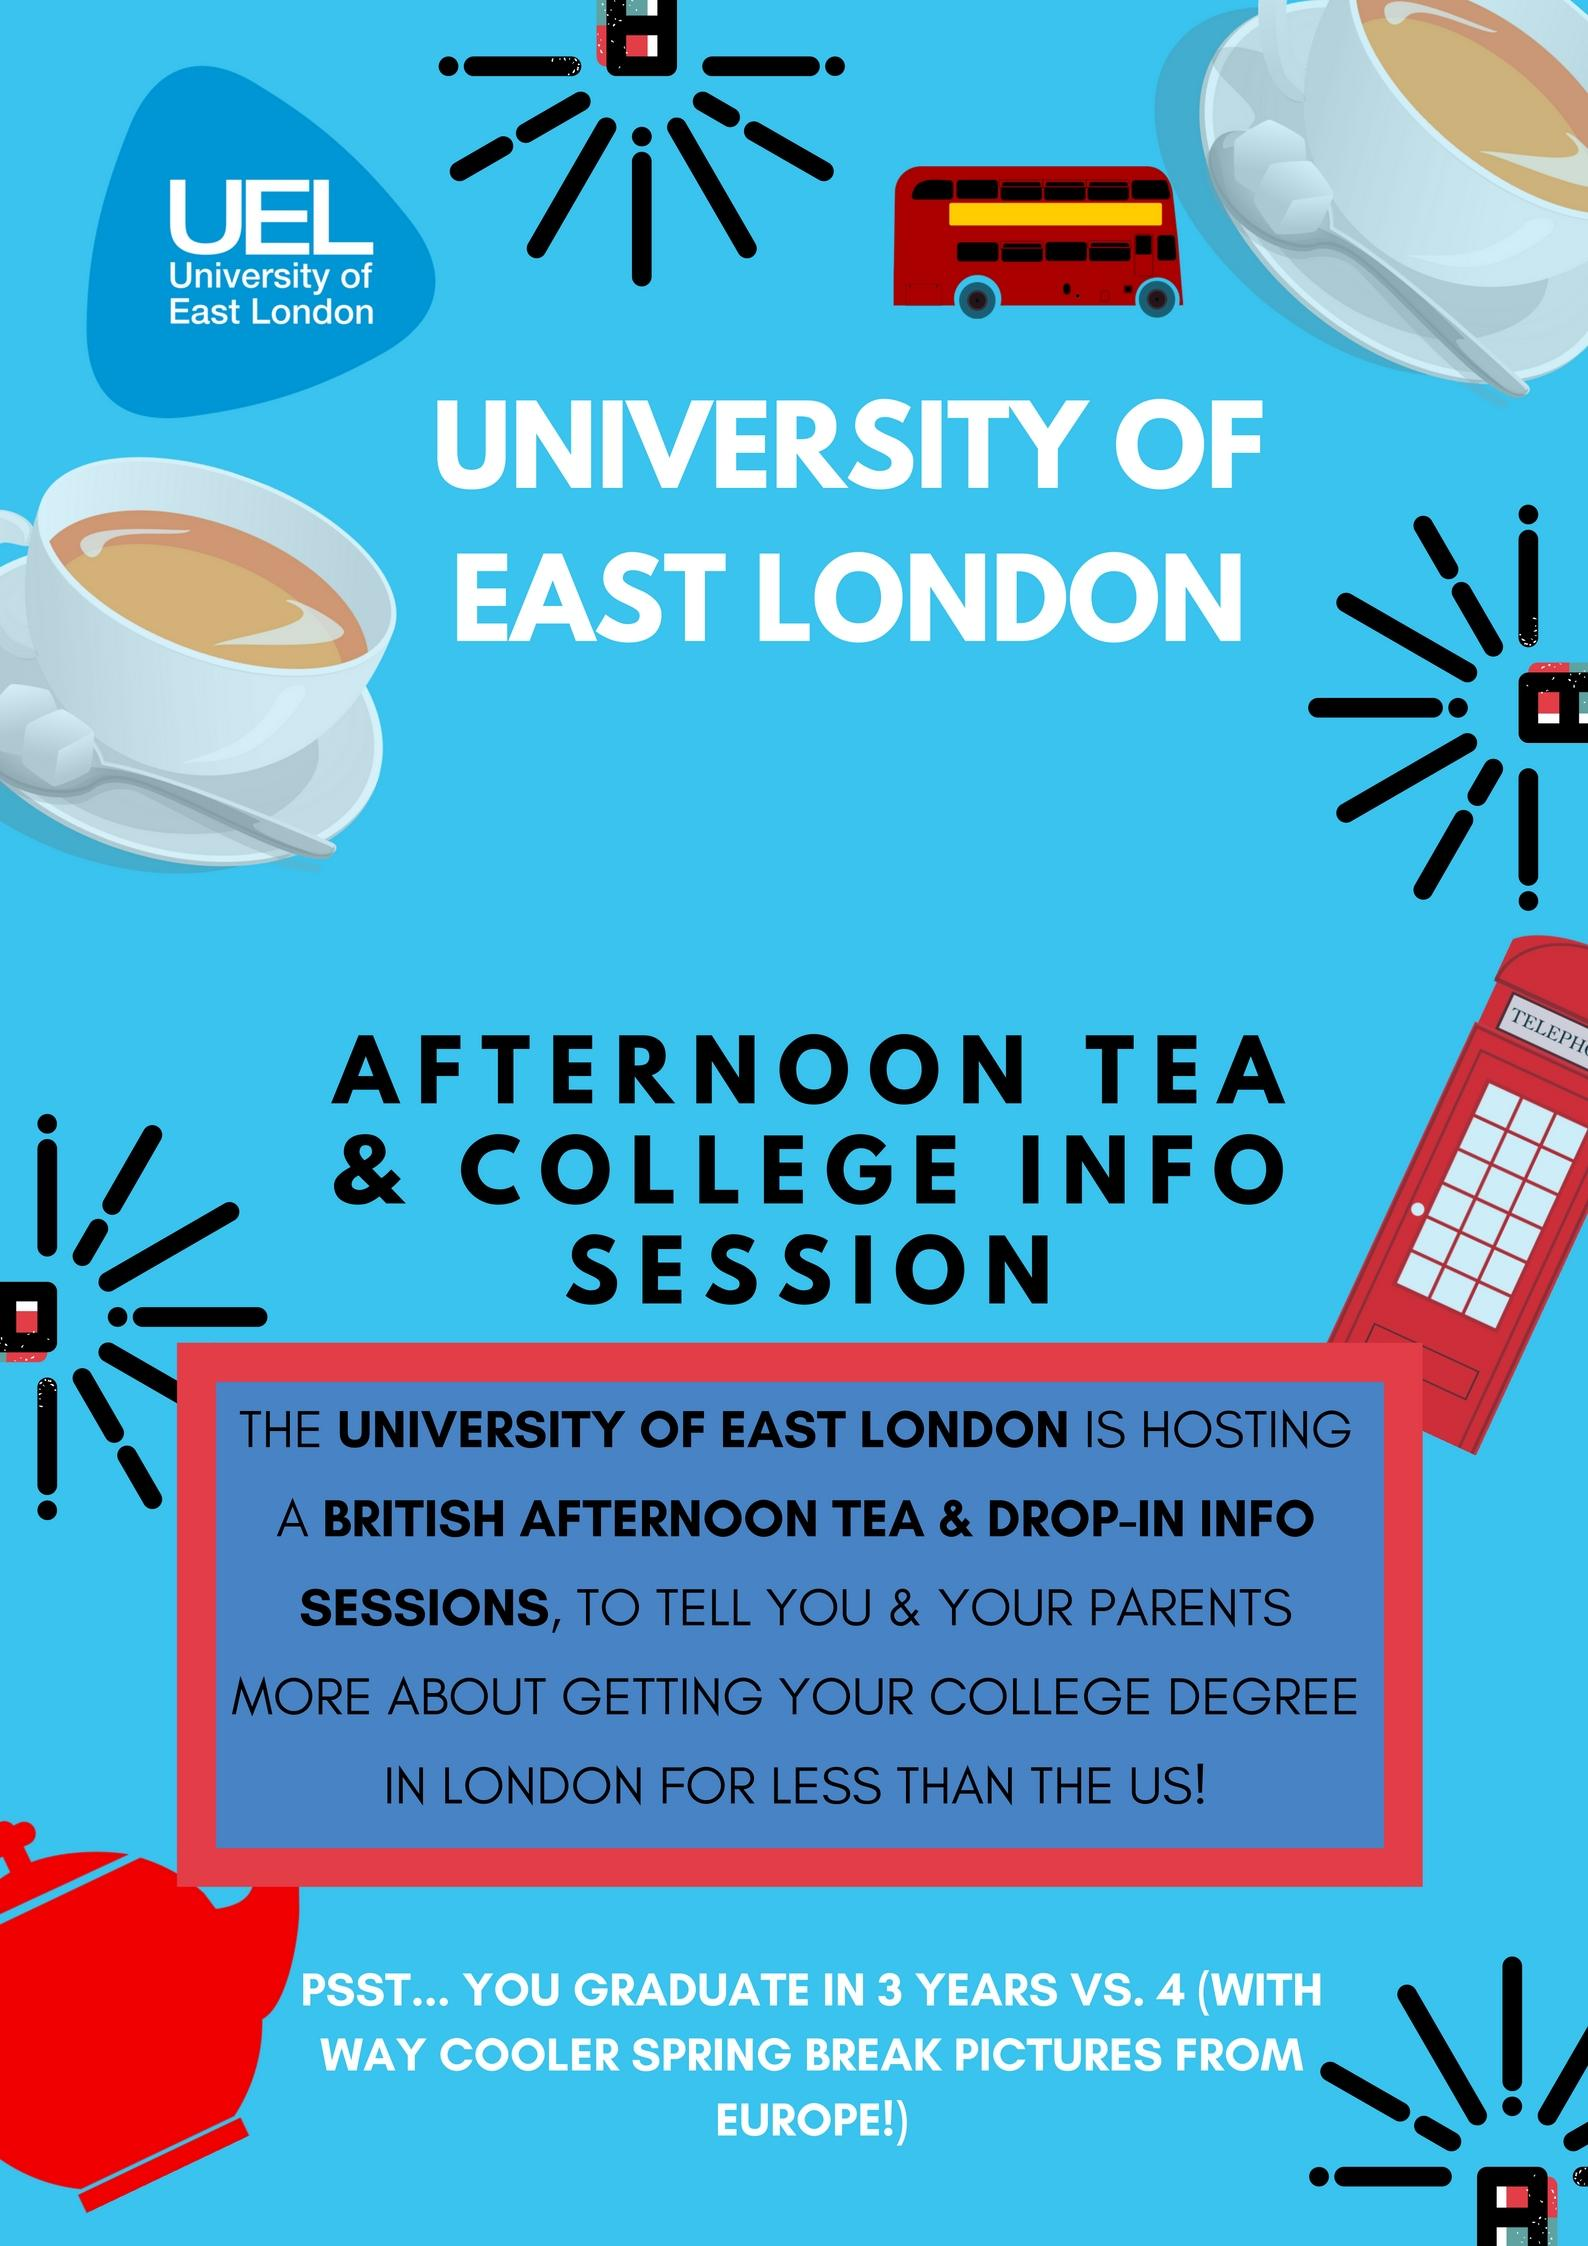 Afternoon Tea with University of East London: